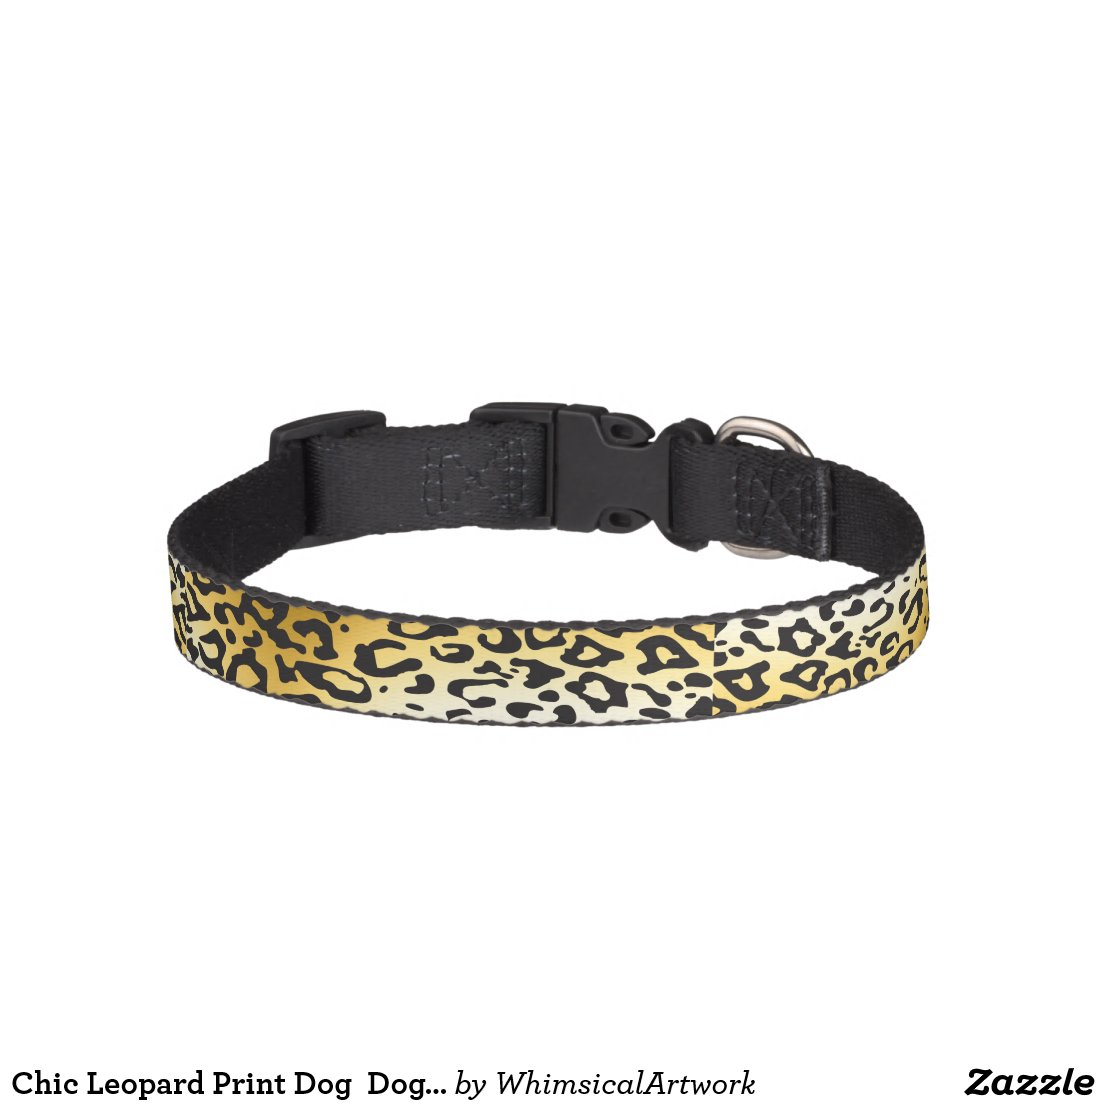 Chic Leopard Print Dog Dog Collar